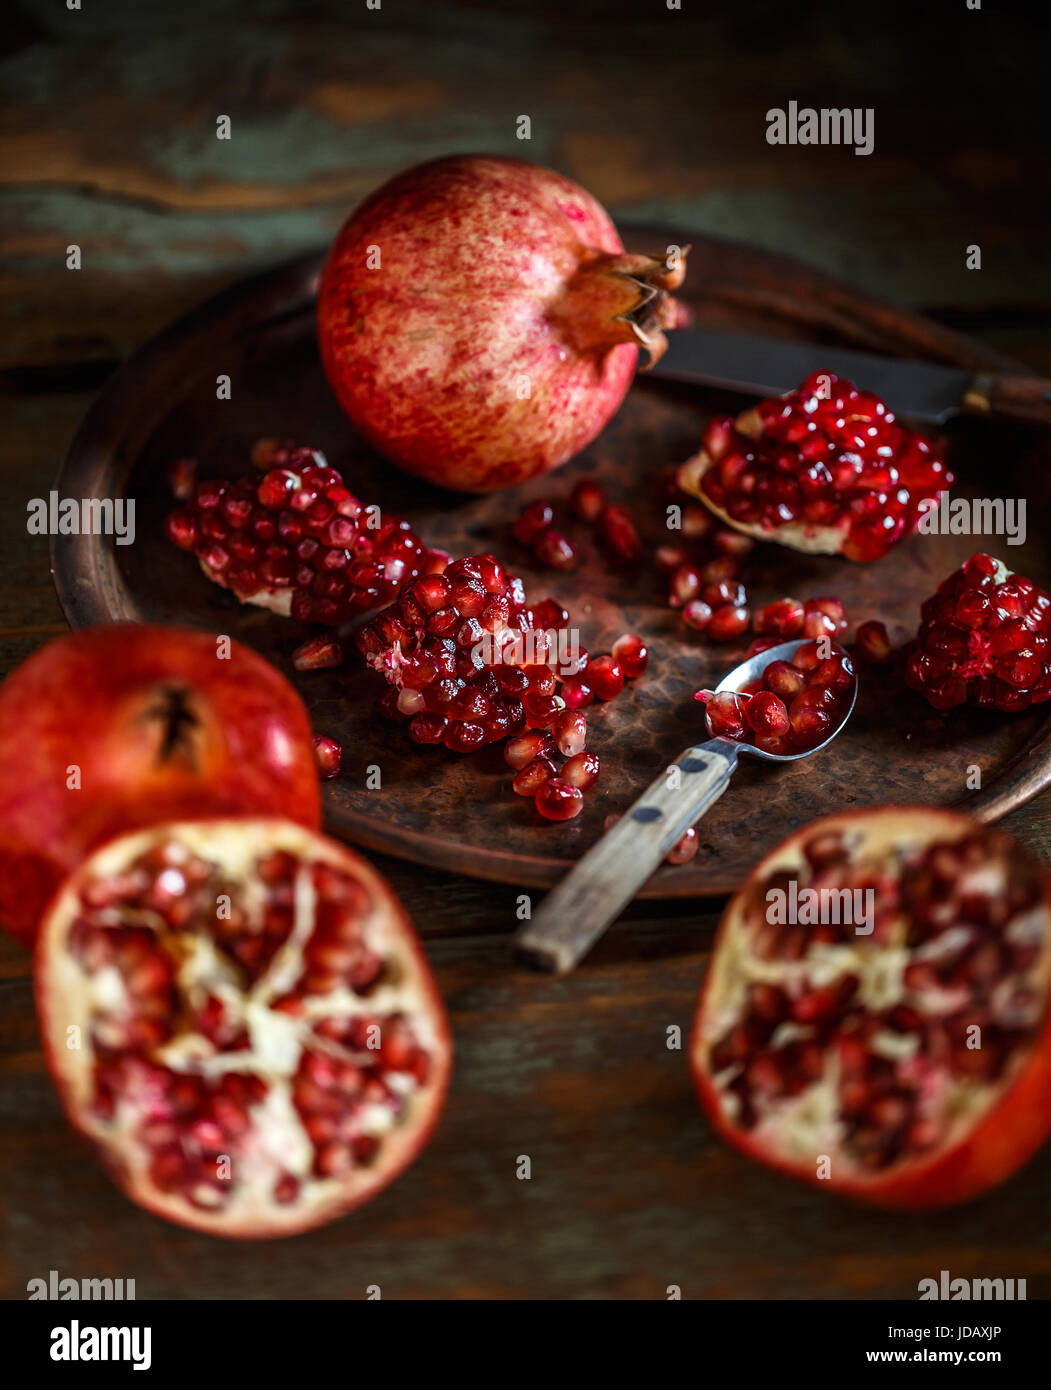 Broken and whole red ripe juicy pomegranates - Stock Image